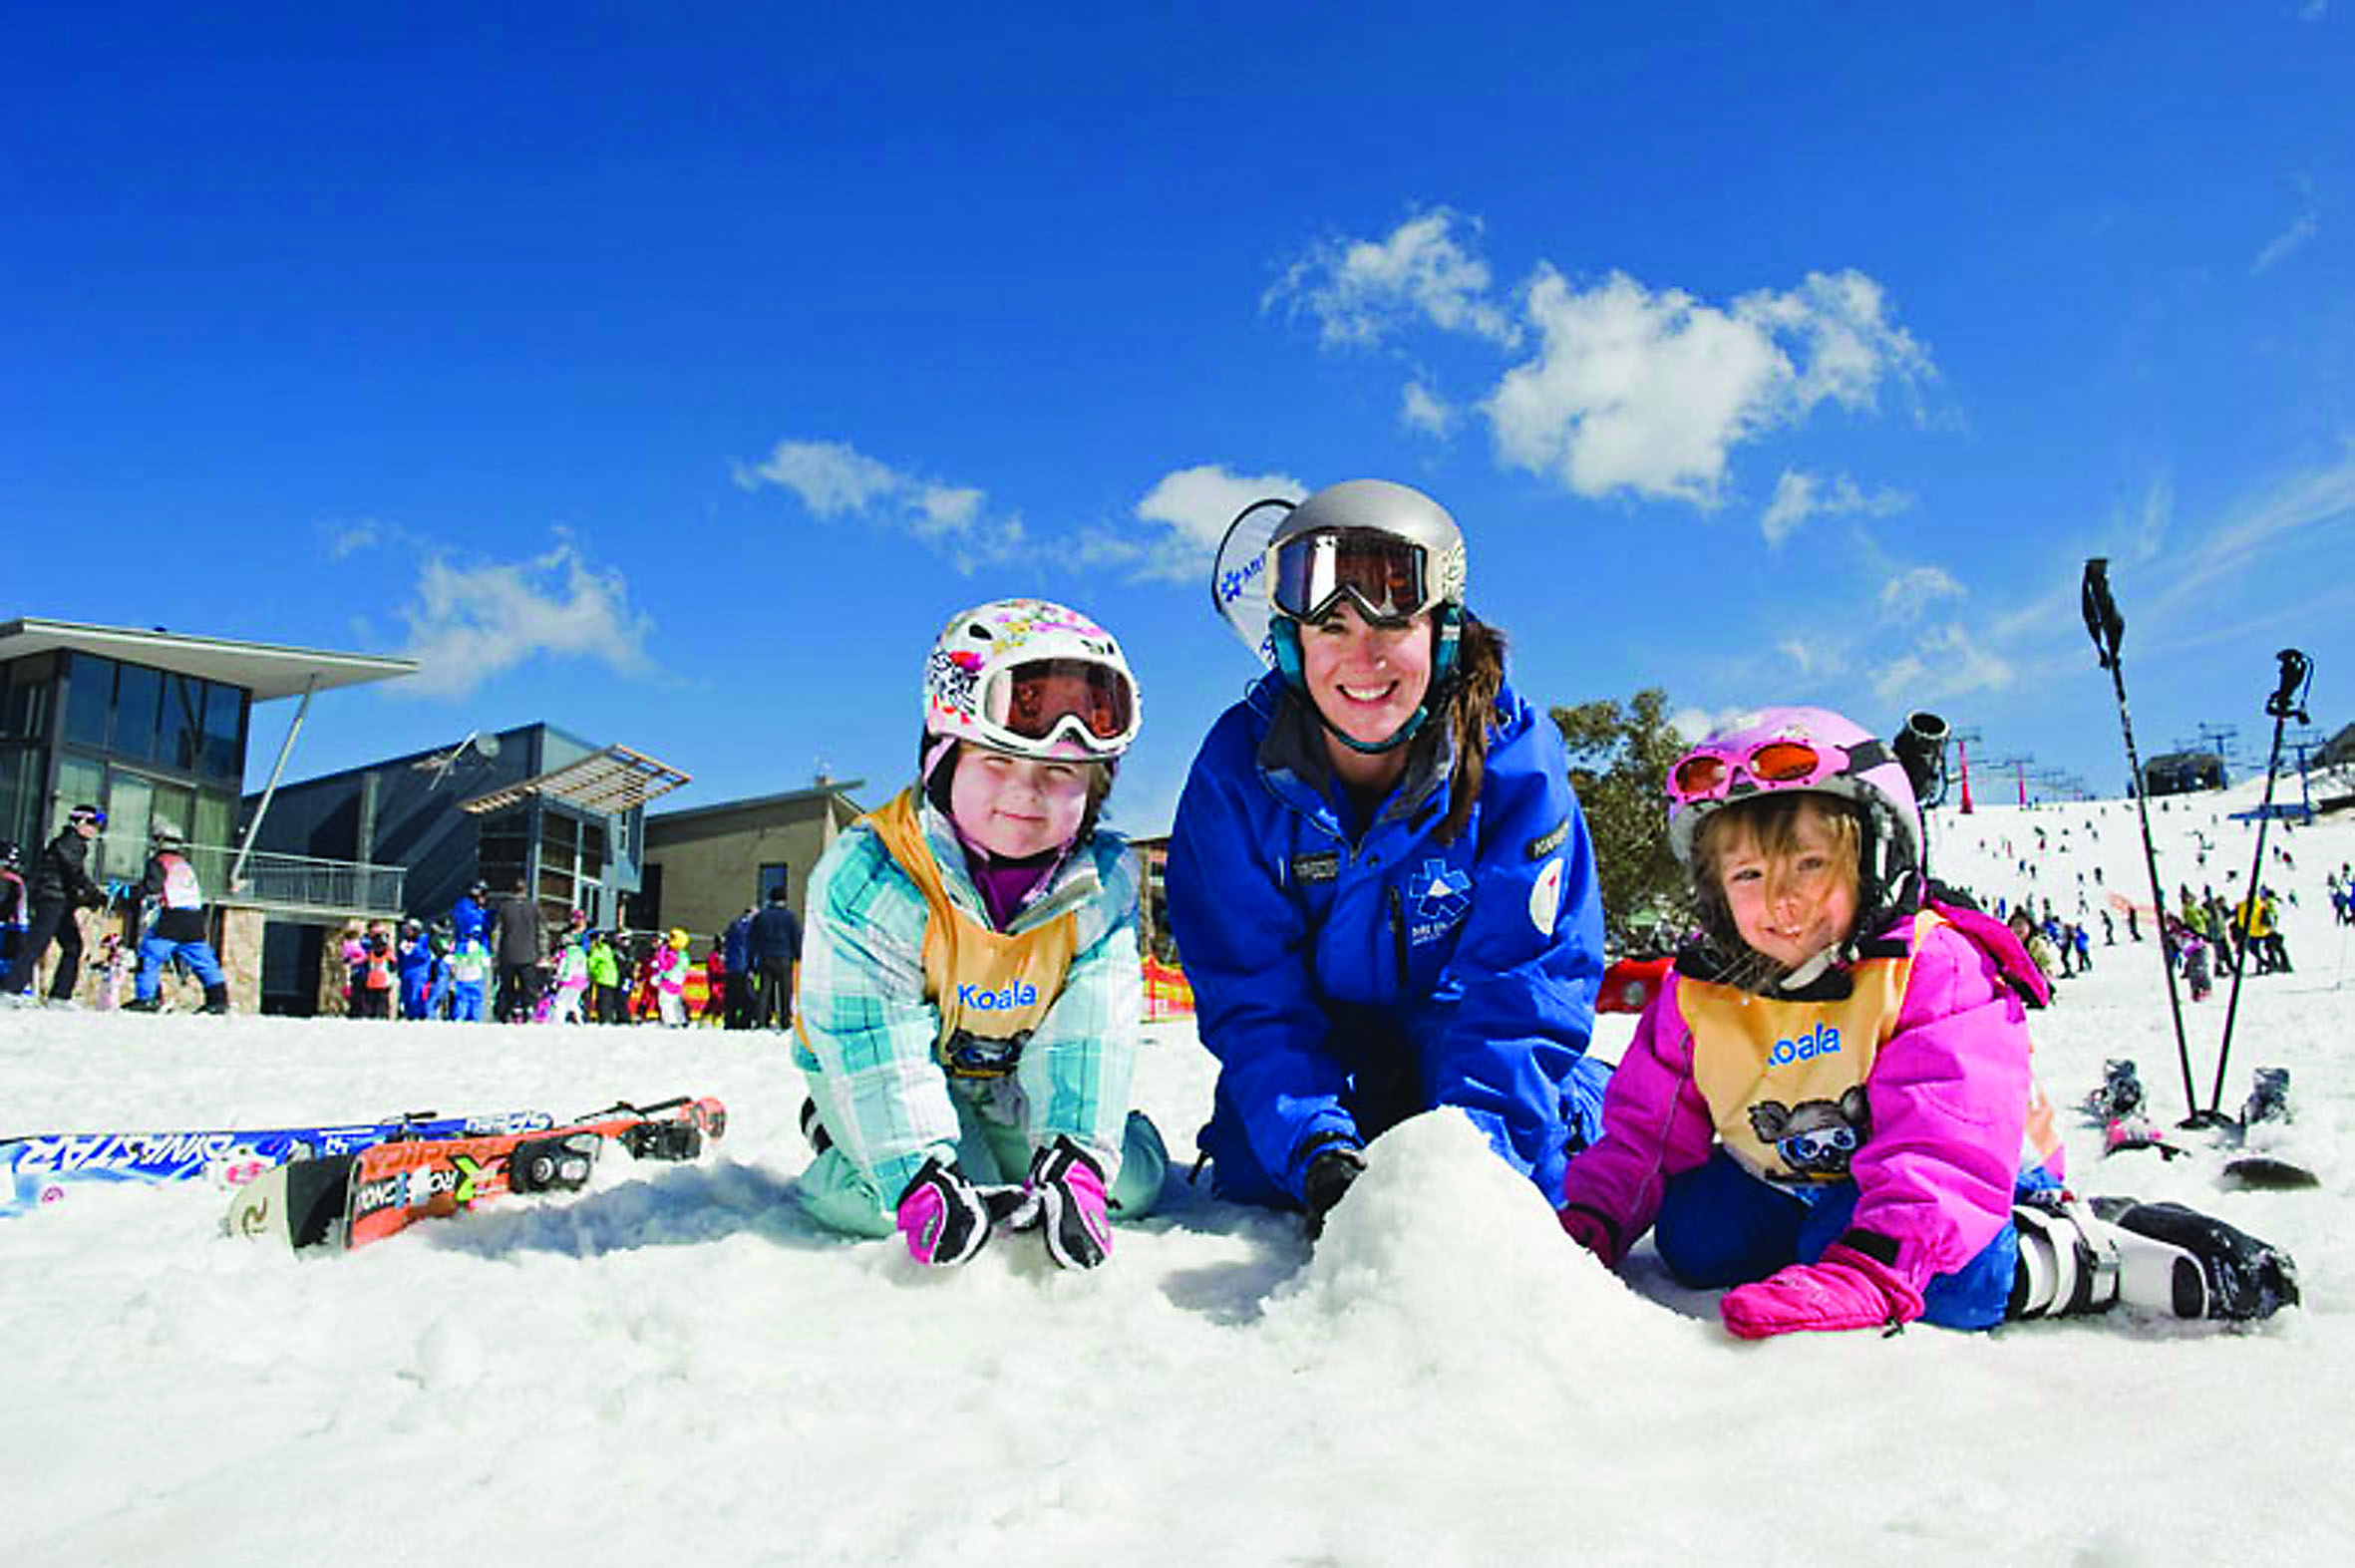 mbt32_snow_play_mount_buller